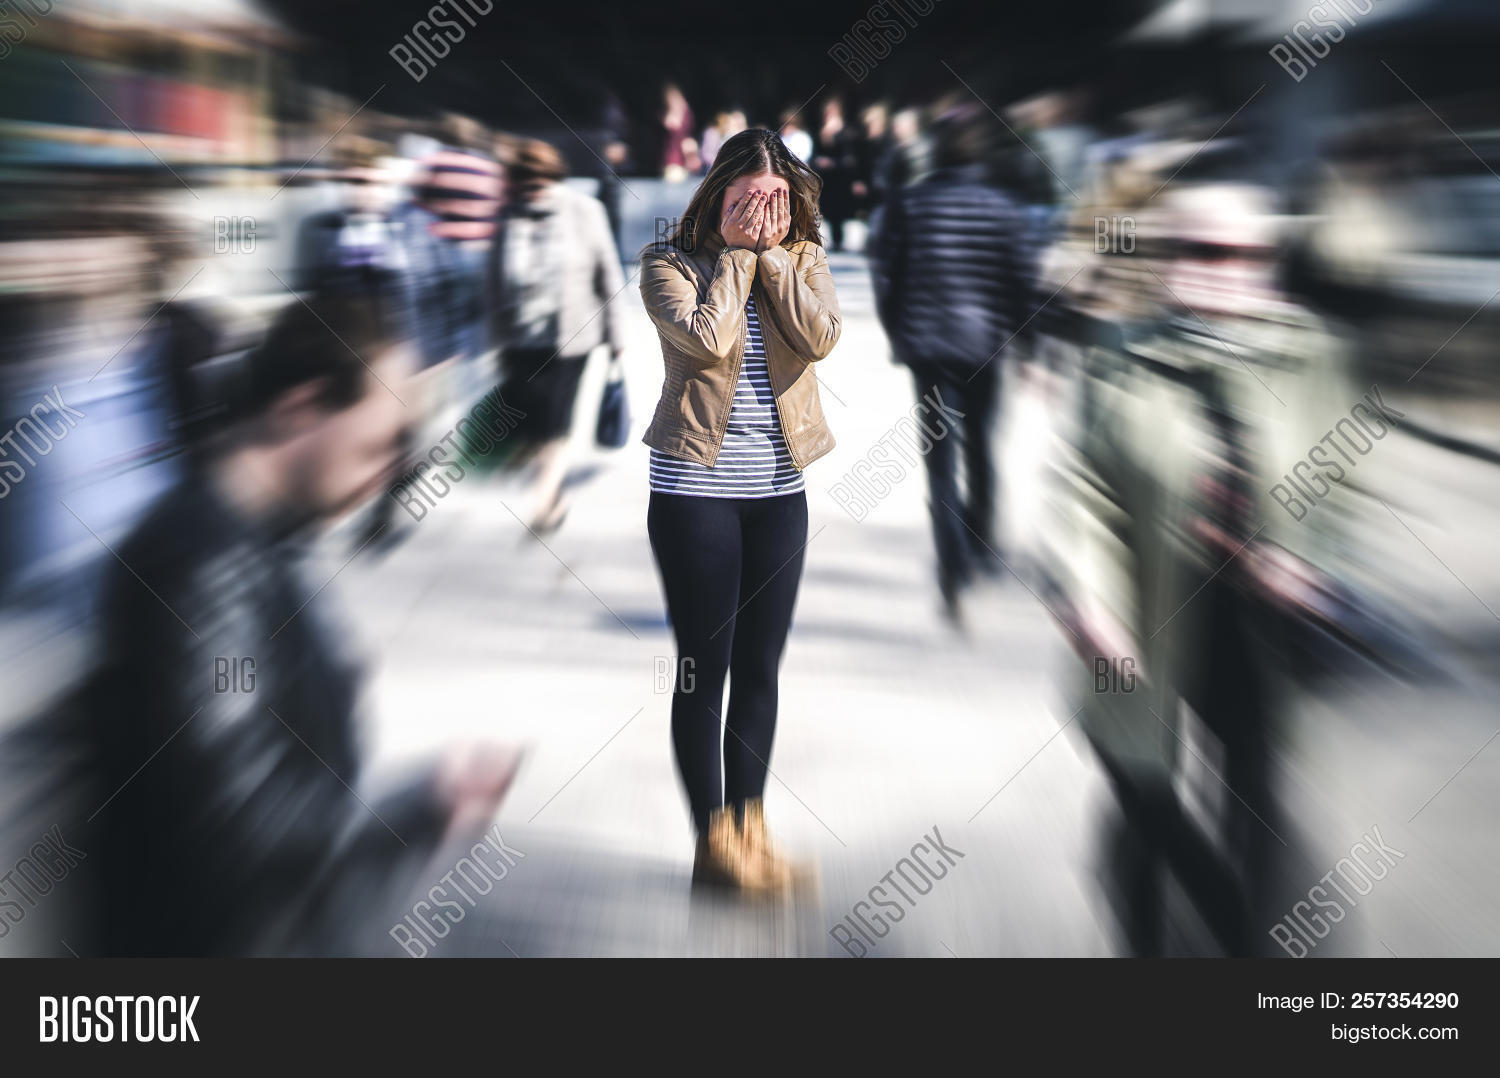 Panic Attack In Public Place. Woman Having Panic Disorder In City. Psychology, Solitude, Fear Or Men